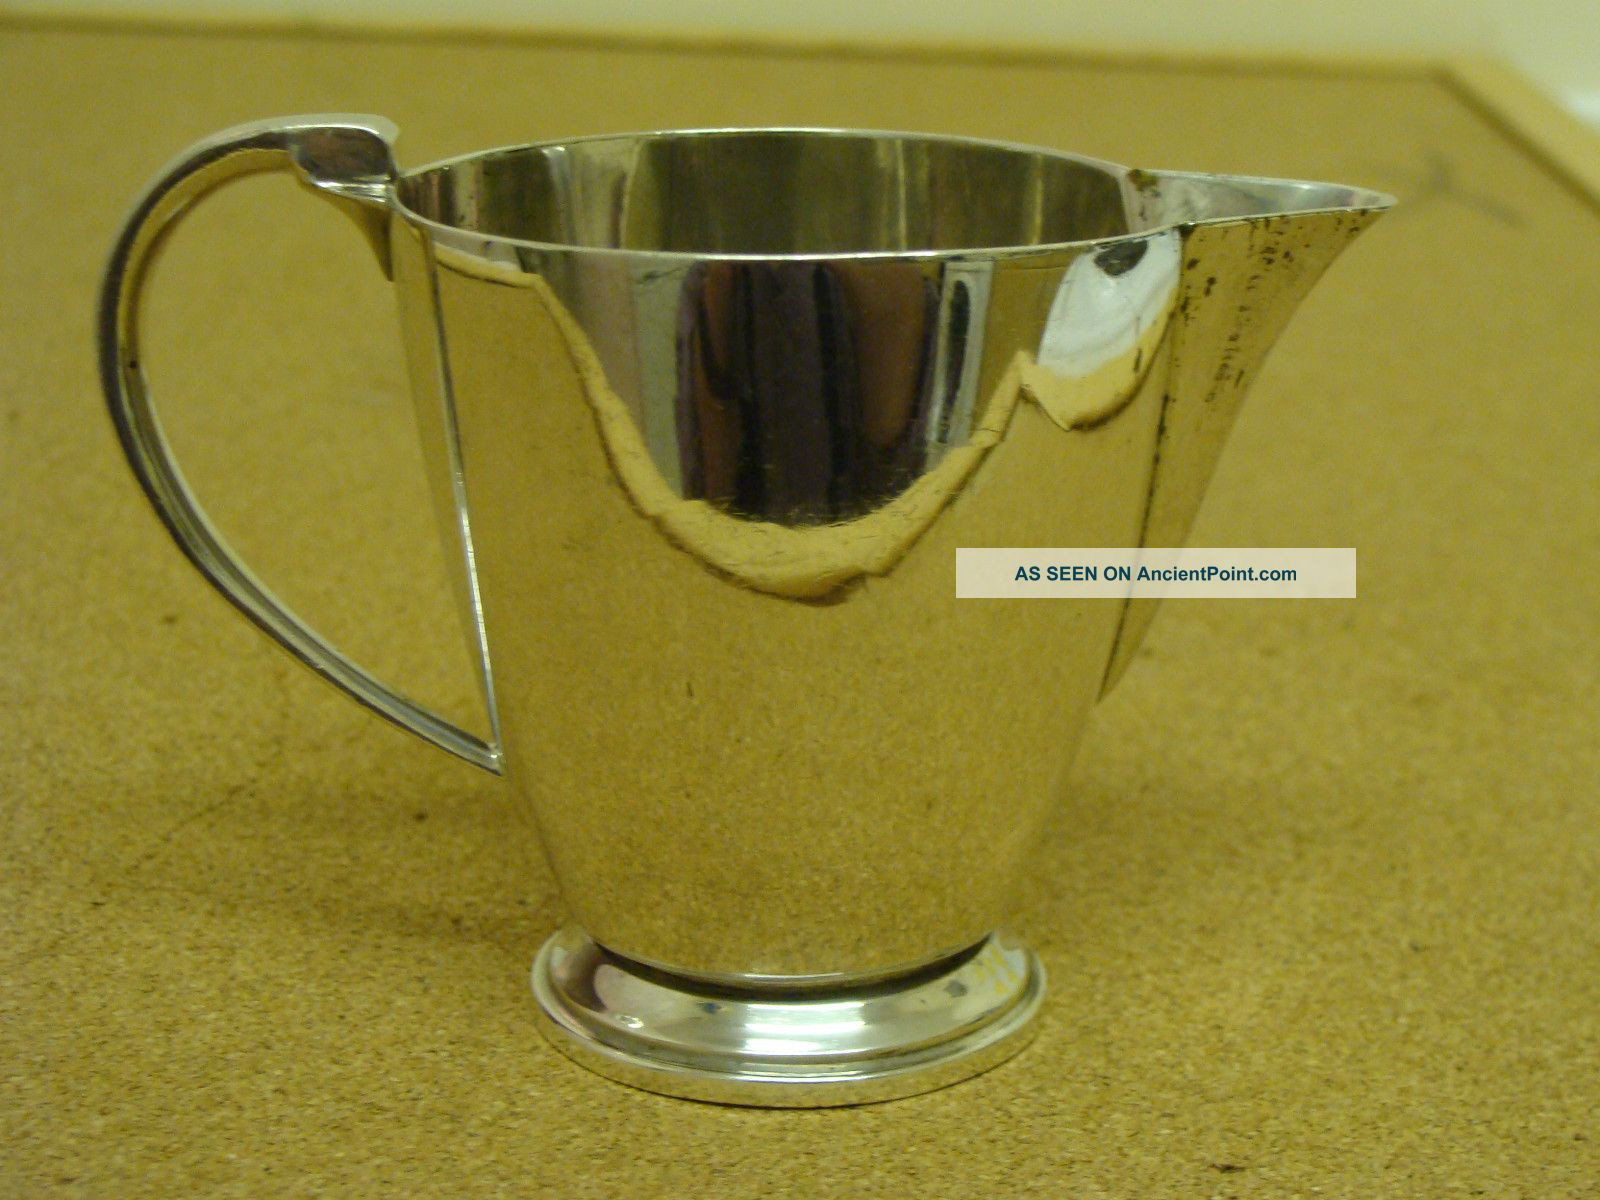 Antique Solid Silver - Britannia Silver - Milk / Cream Jug - 1935 Pitchers & Jugs photo